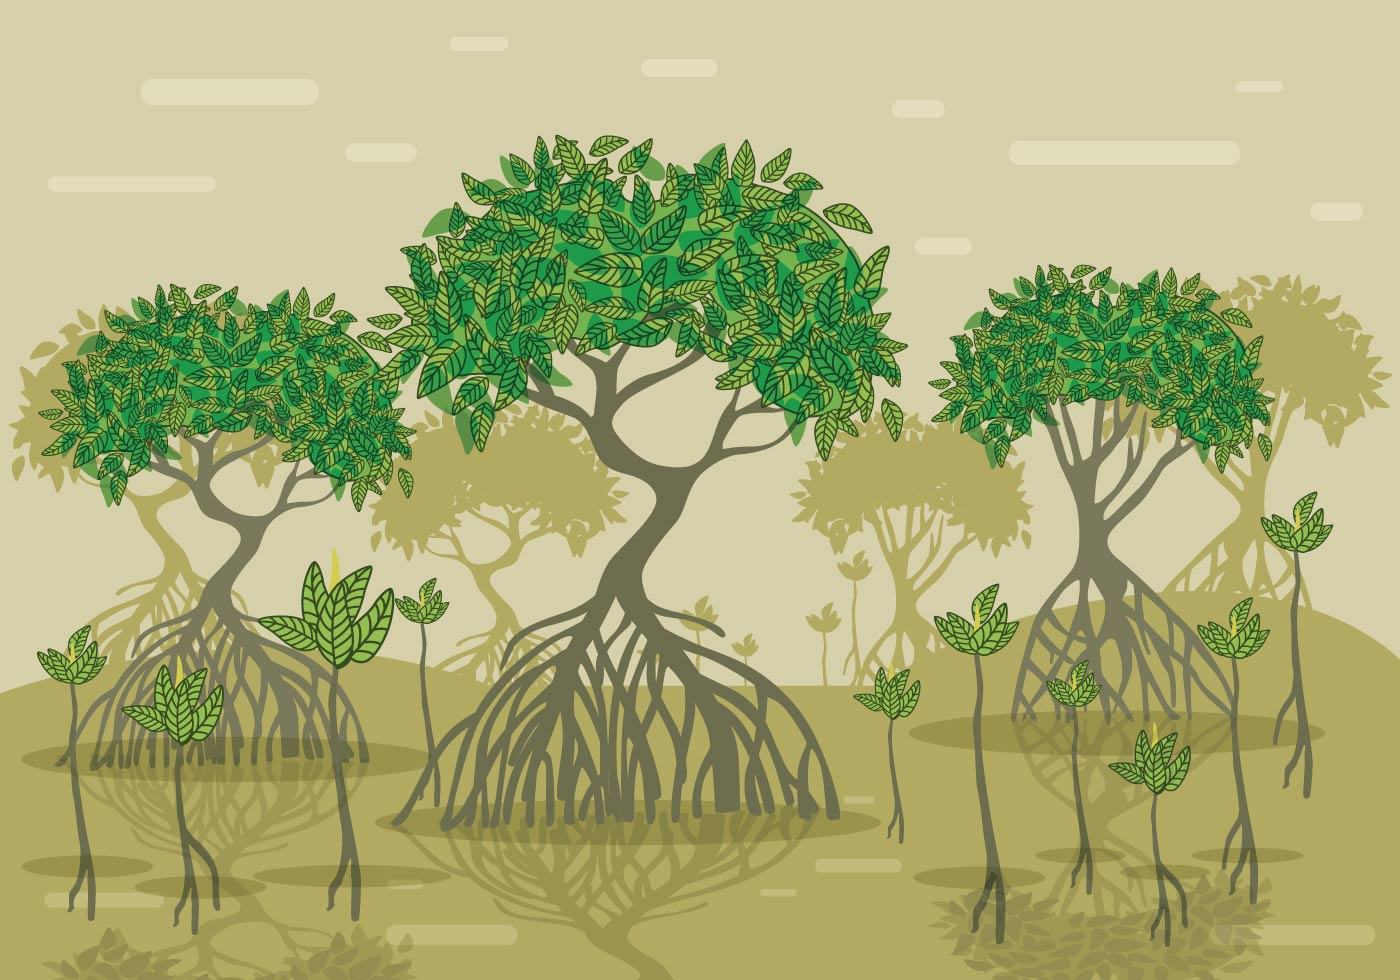 Mangrove Forest Free Vector Art - (2190 Free Downloads)